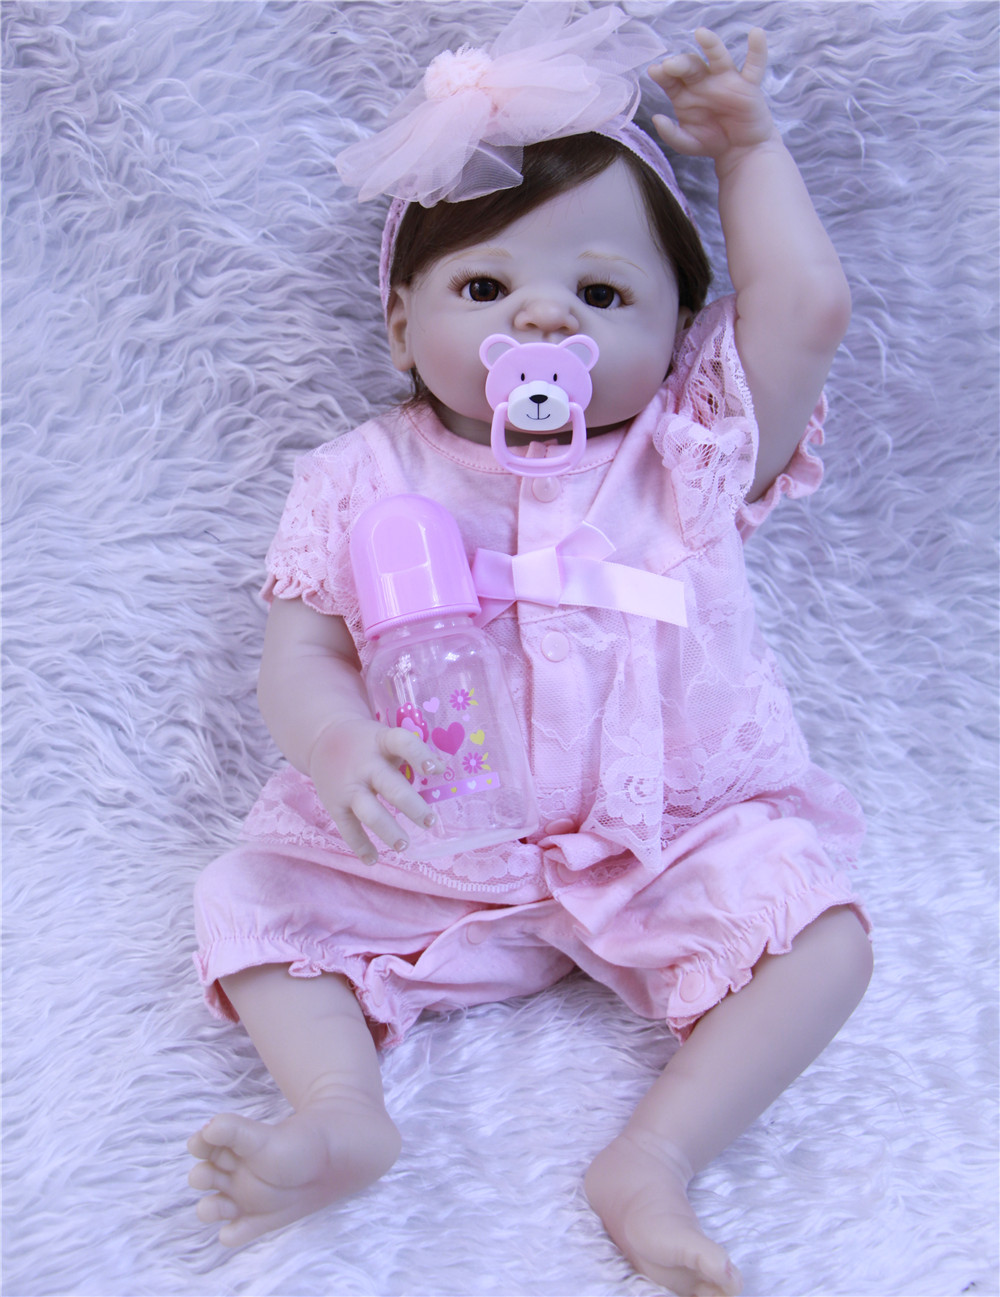 55CM full Silicone reborn baby doll toys for girl, lifelike reborn babies play house toy birthday gift girl brinquedos bonecas